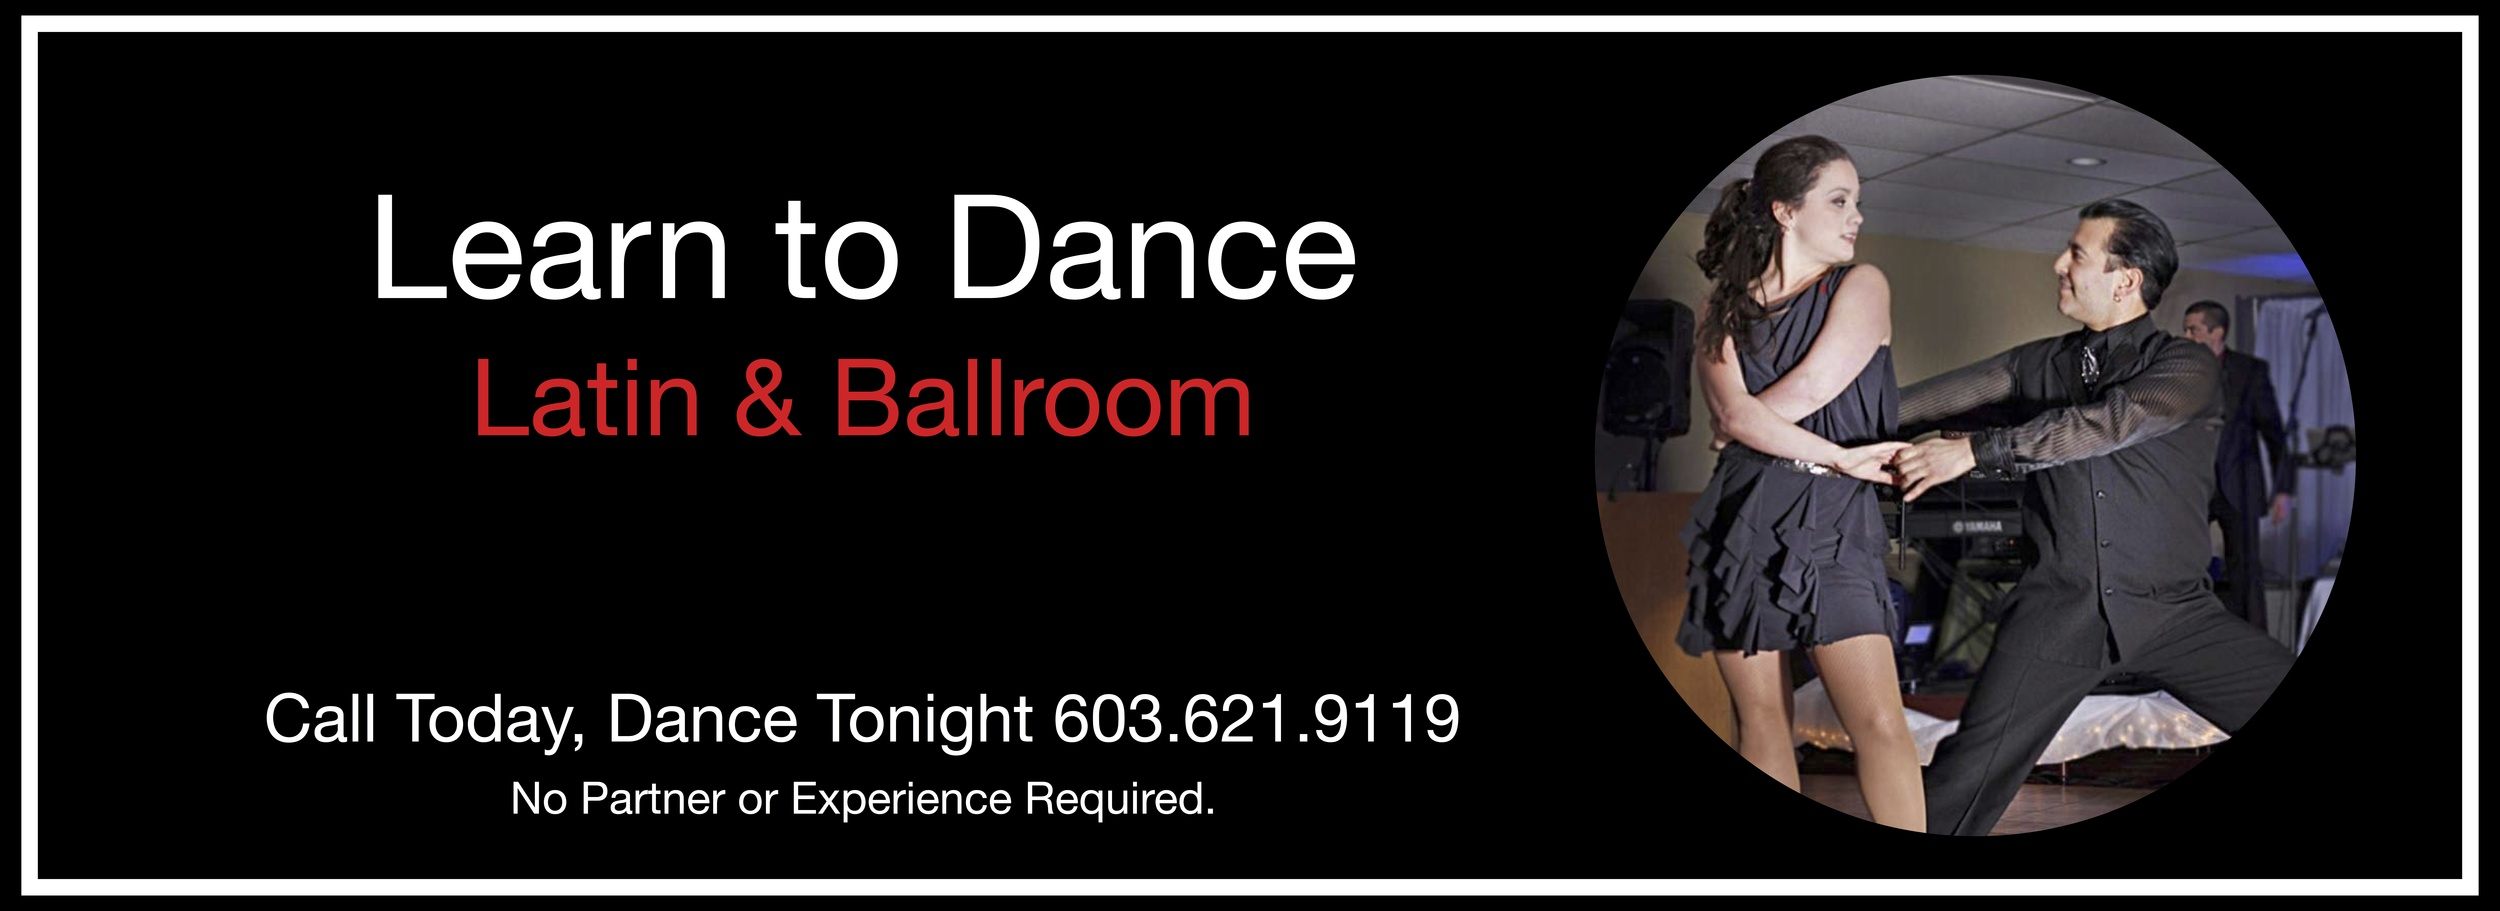 Ballroom and Latin Dance Studio Manchester NH